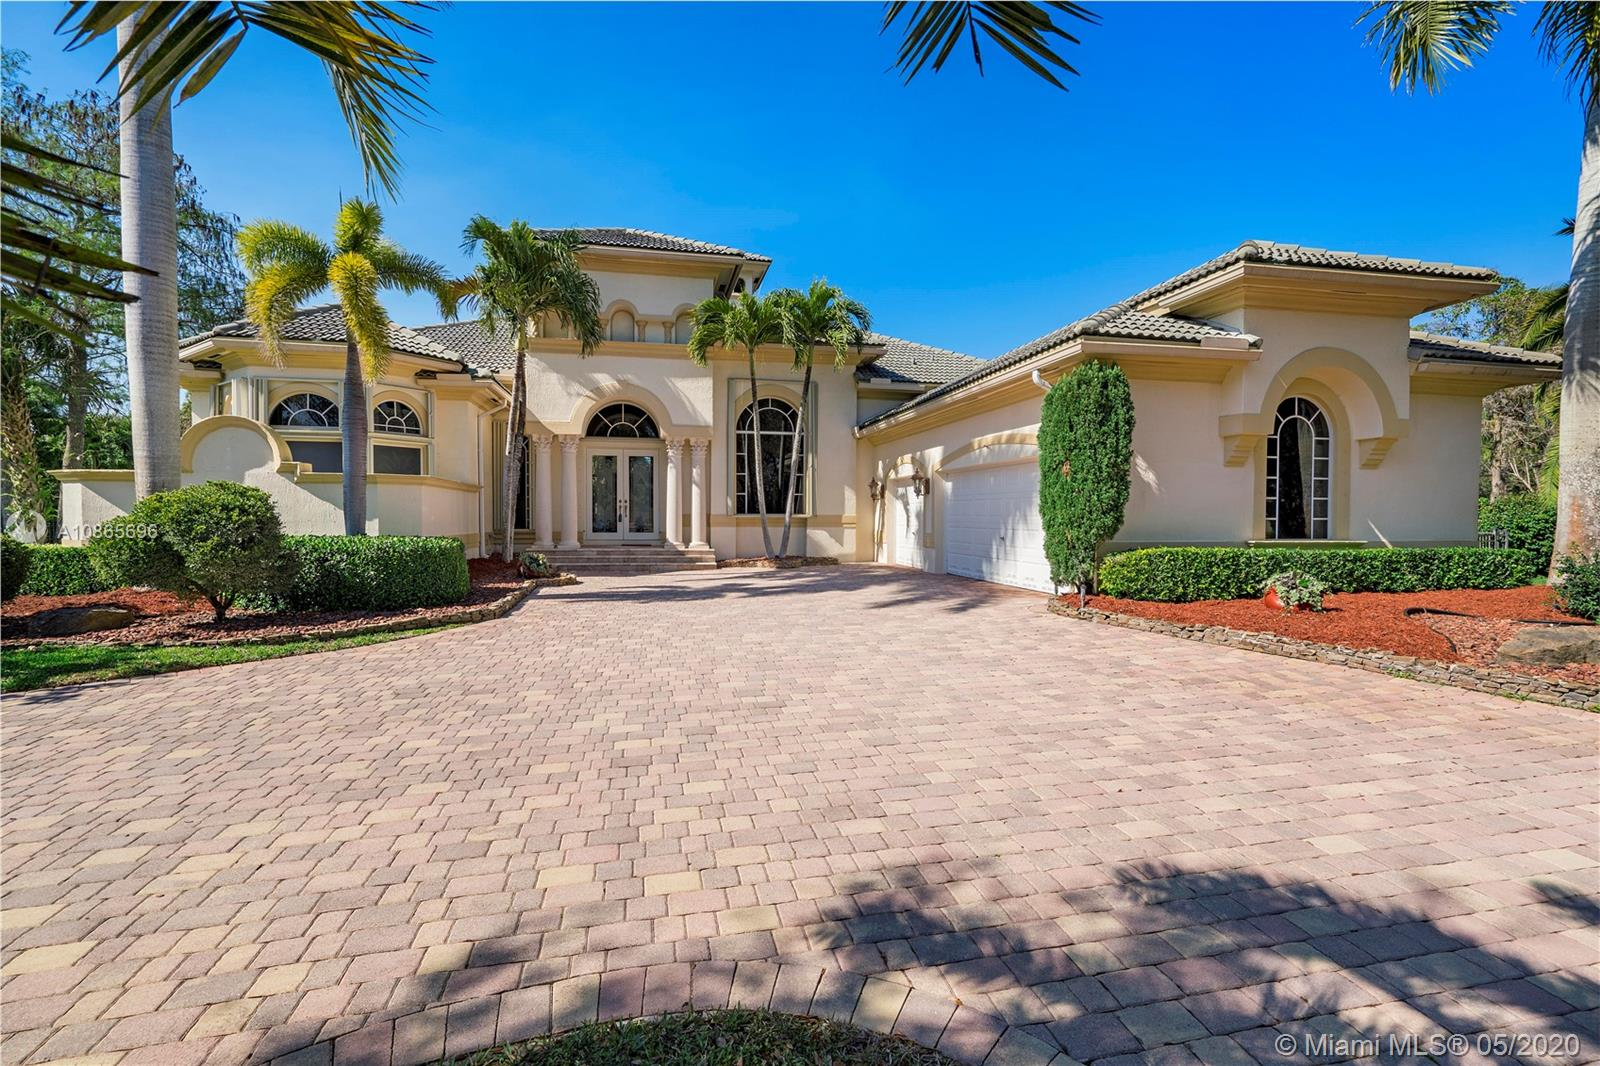 Pride of Ownership is evident as soon as you walk into this exquisite custom built home in Grand Cypress Estates. This ½ acre pool home has every upgrade a customer builder could provide. If you like elegant wood, then the floors, woodwork, built ins and molding will hold your attention. The unique ceilings, architectural archways and walls will be a point of conversation. One look at the fully equipped Sub-Zero Bosch appointed kitchen and the cook won't want to leave one granite counter top untouched. Warm up on a cool night in front of your fireplace or enjoy the Florida lifestyle from your crystal clear pool. The floor plan, bed and bath design opens up lots of possibilities. You have price, comfort, elegance, style and luxury calling your name. Don't miss your call.